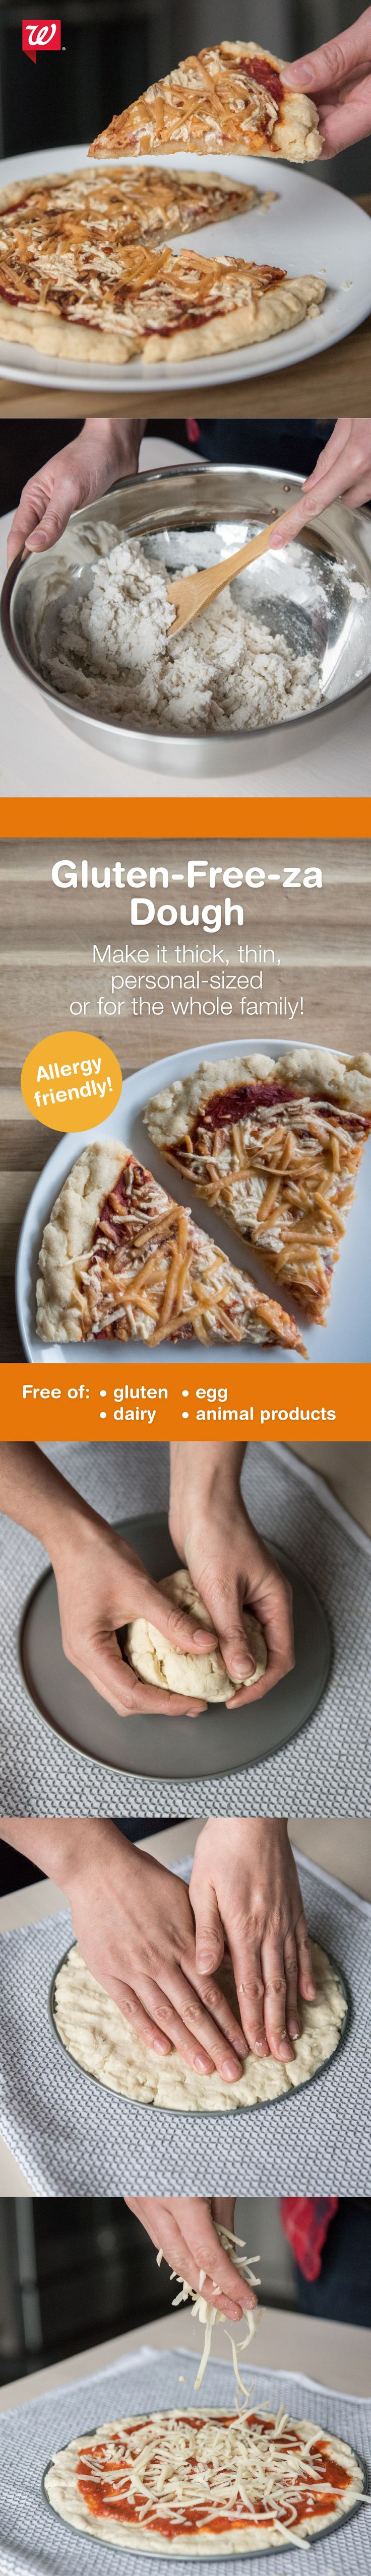 Pizza dough that everyone can enjoy! Try this yummy gluten-free recipe on our Stay Well blog.